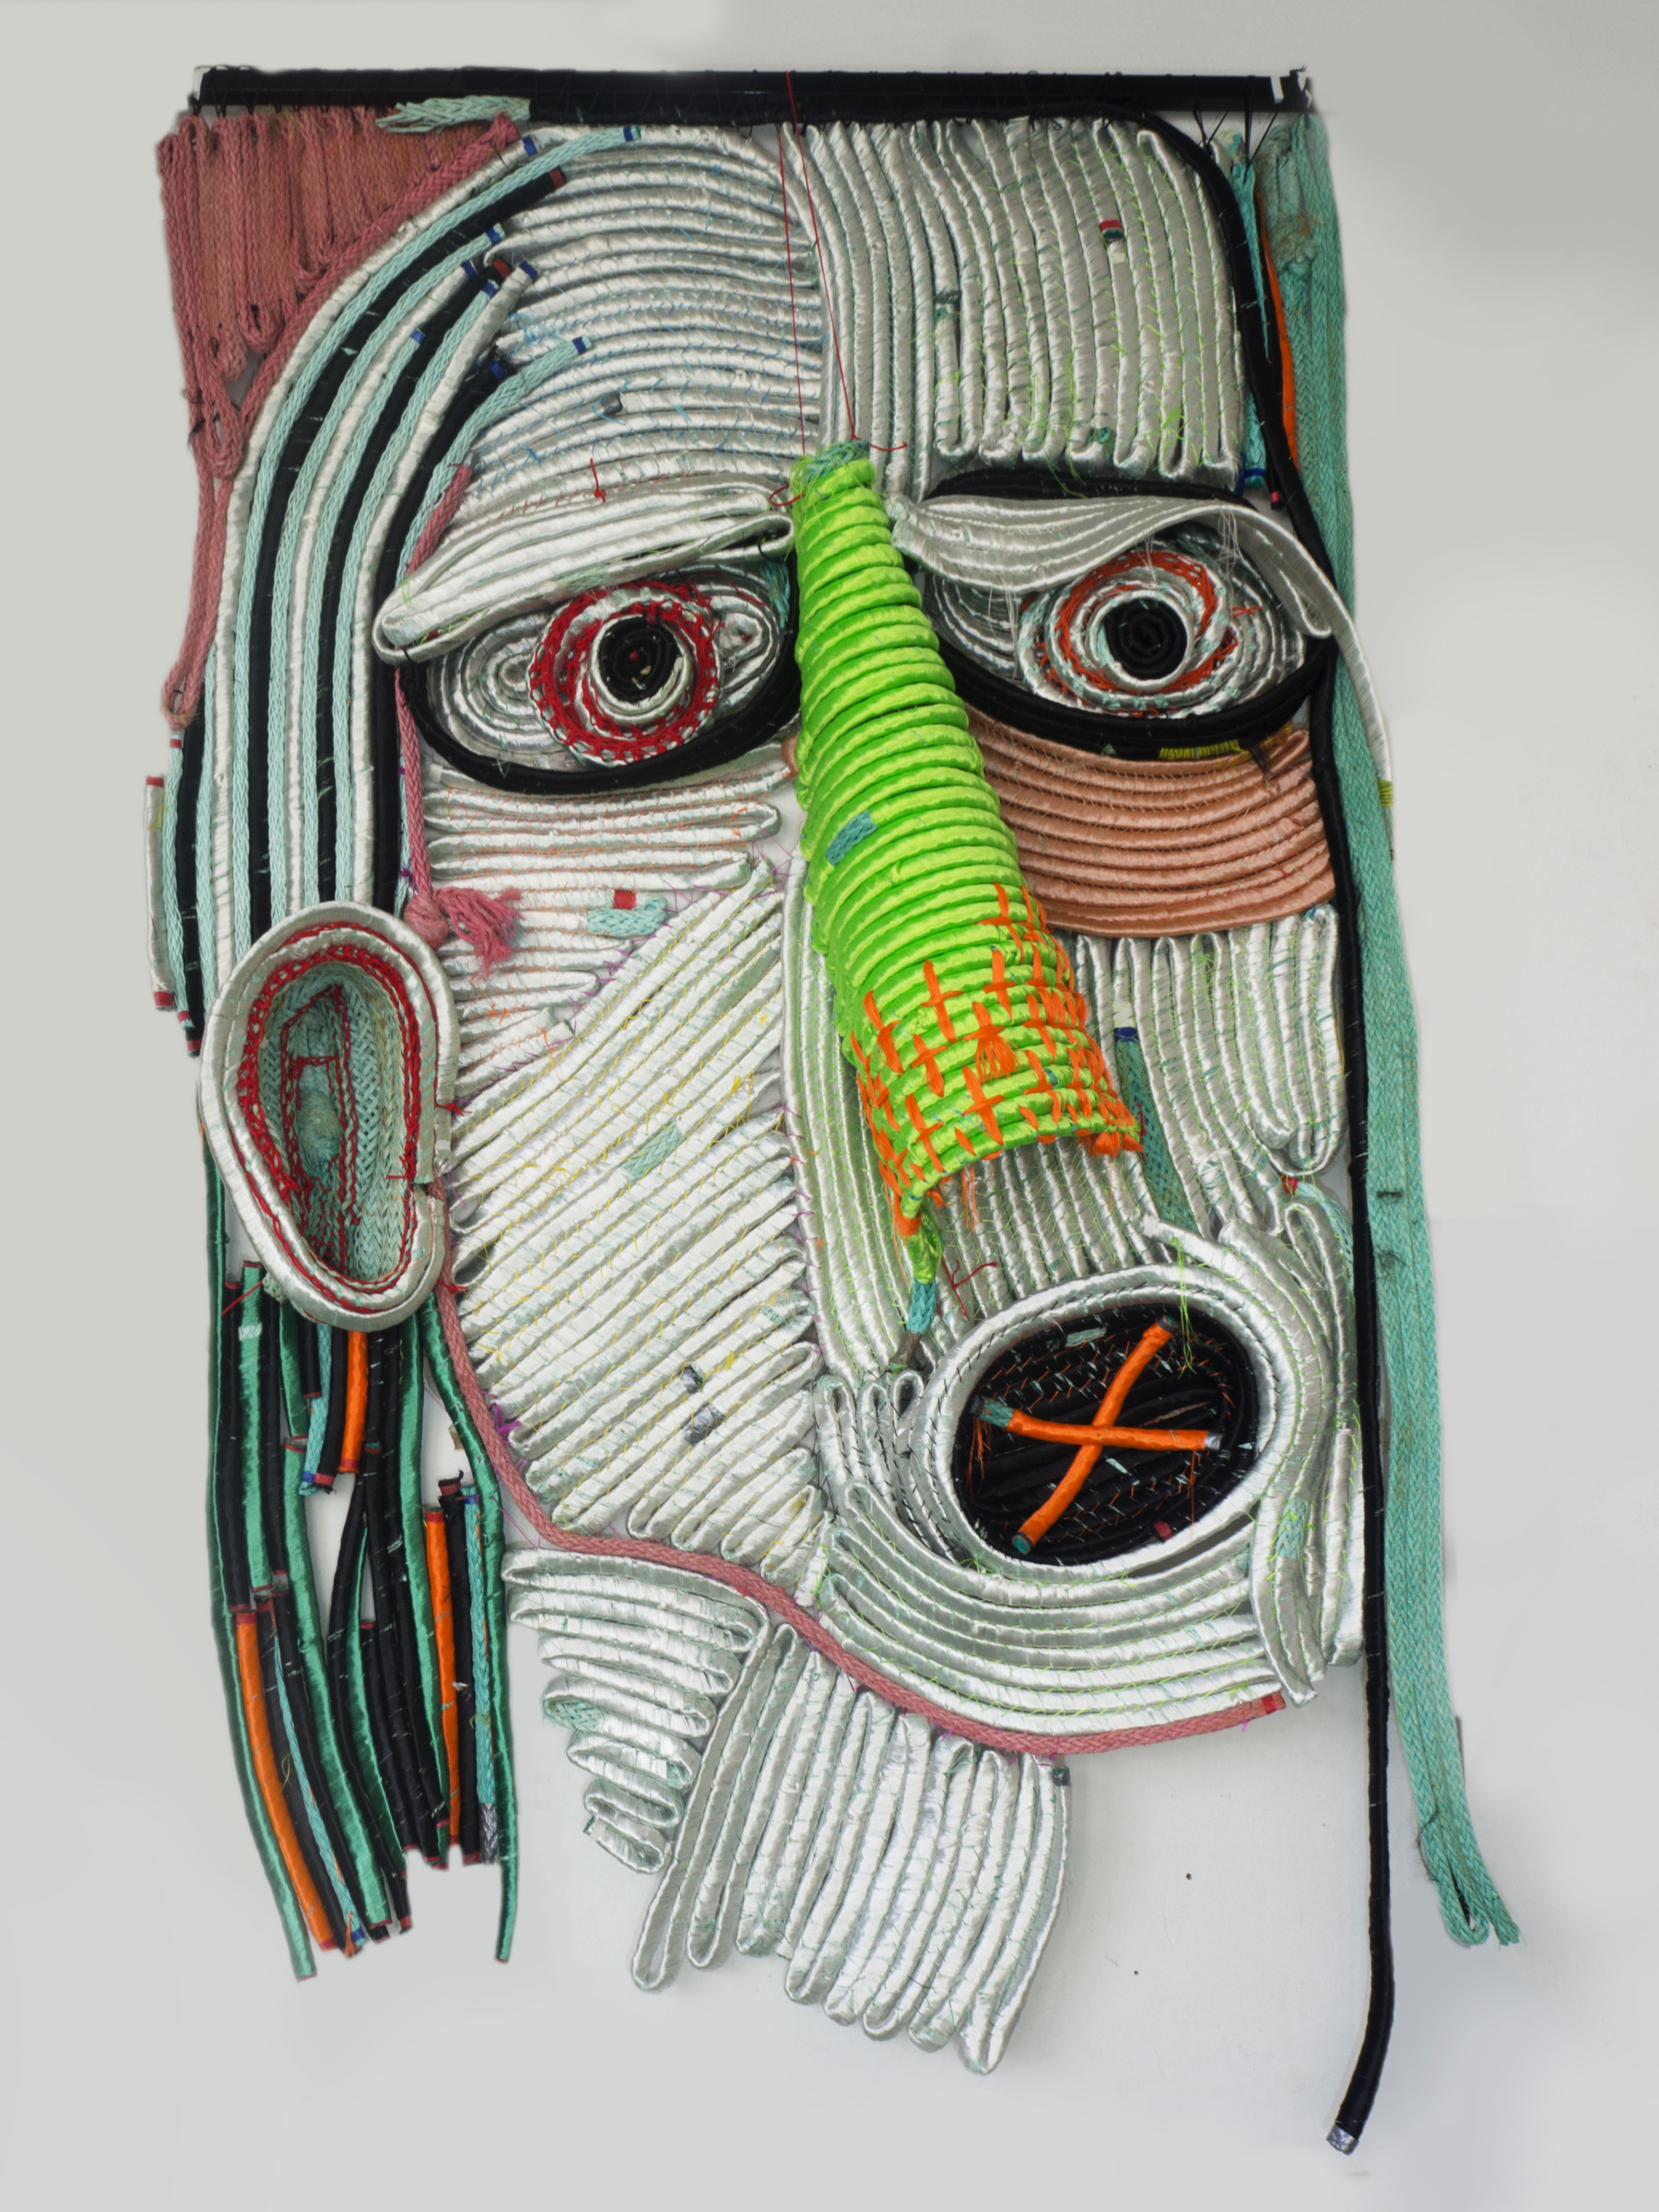 <span class=&#34;link fancybox-details-link&#34;><a href=&#34;/artists/66-joana-schneider/works/5526-joana-schneider-fugitive-2019/&#34;>View Detail Page</a></span><div class=&#34;artist&#34;><strong>Joana Schneider</strong></div> <div class=&#34;title&#34;><em>Fugitive</em>, 2019</div> <div class=&#34;medium&#34;>Recycled yarn and rope waste</div> <div class=&#34;dimensions&#34;>300 x 200 cm<br /> 118 1/8 x 78 3/4 in</div>